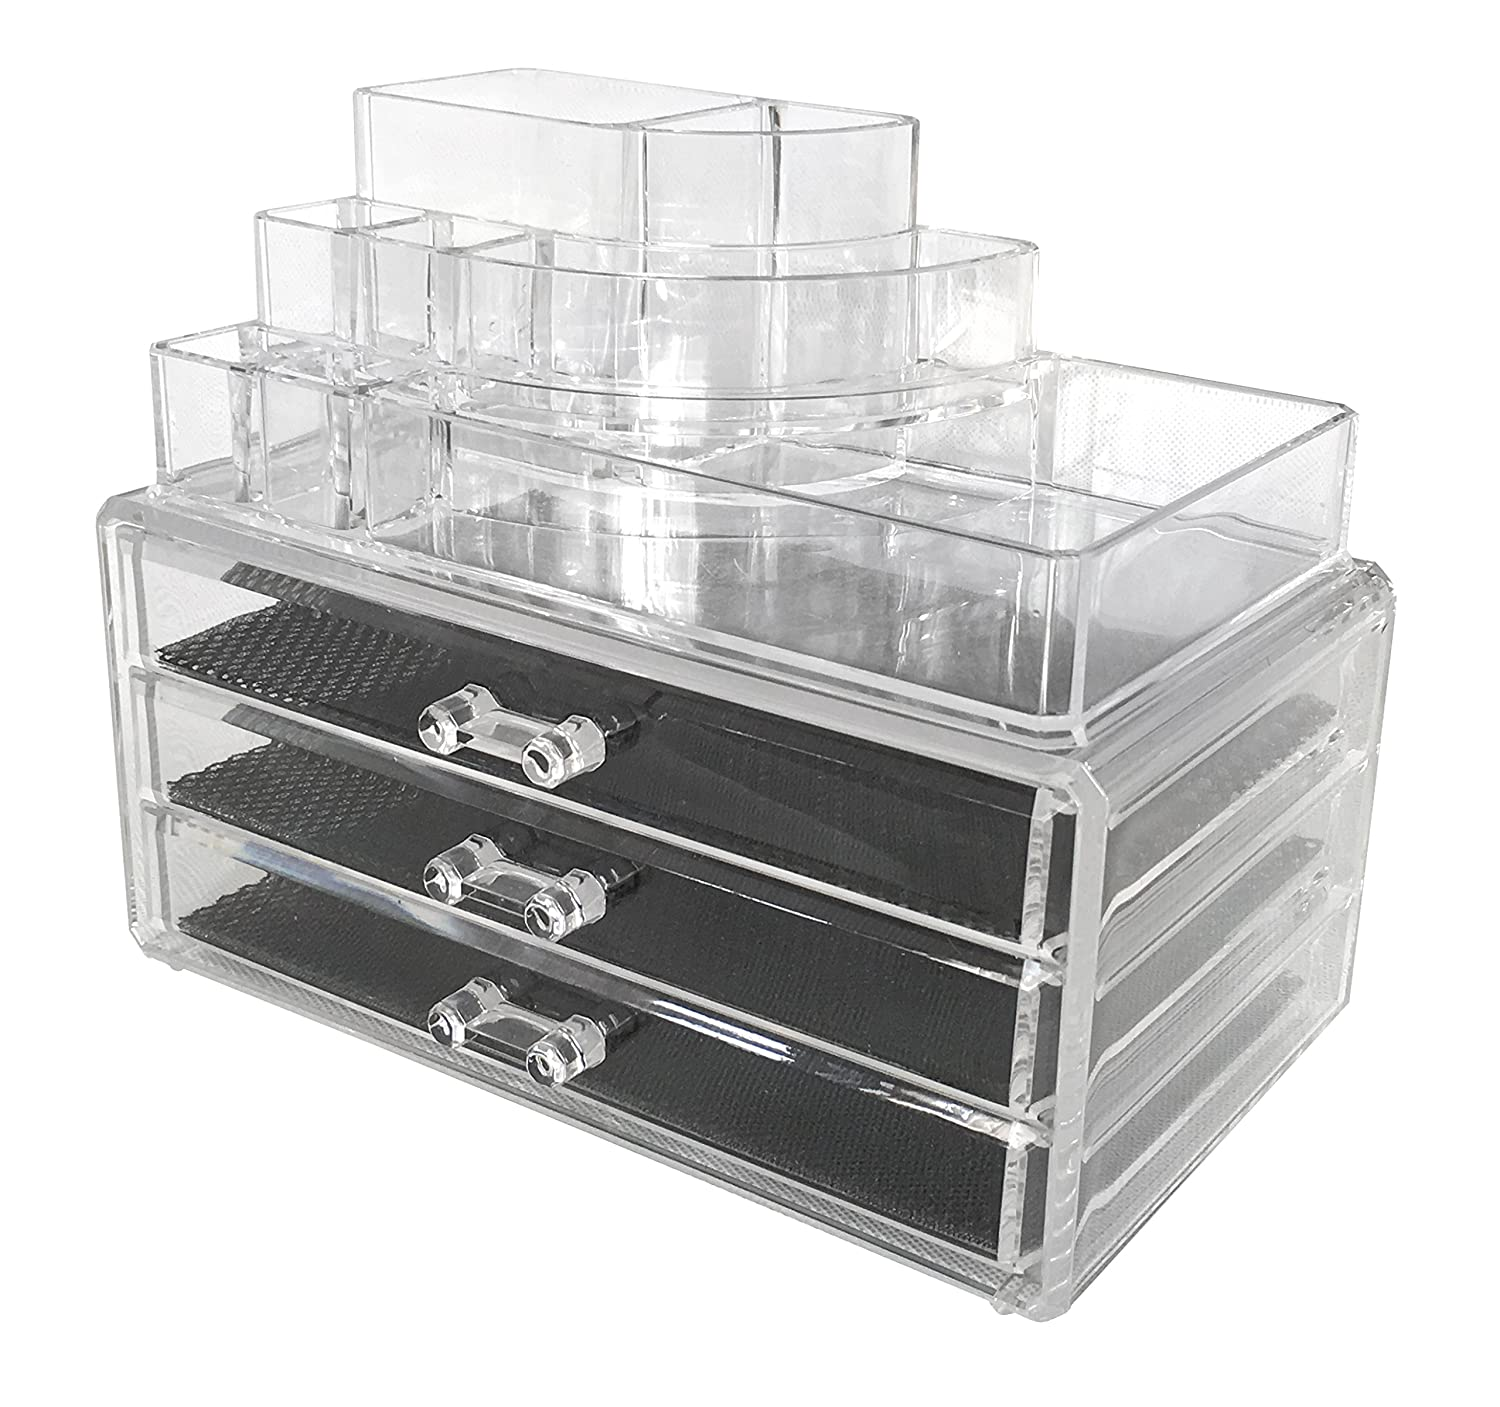 Superior Amazon.com: Sodynee Acrylic Makeup Organizer Cosmetic Organizer Jewelry And Cosmetic  Storage Display Boxes Two Pieces Set(3 Drawer Makeup Storage + Lipstick ...